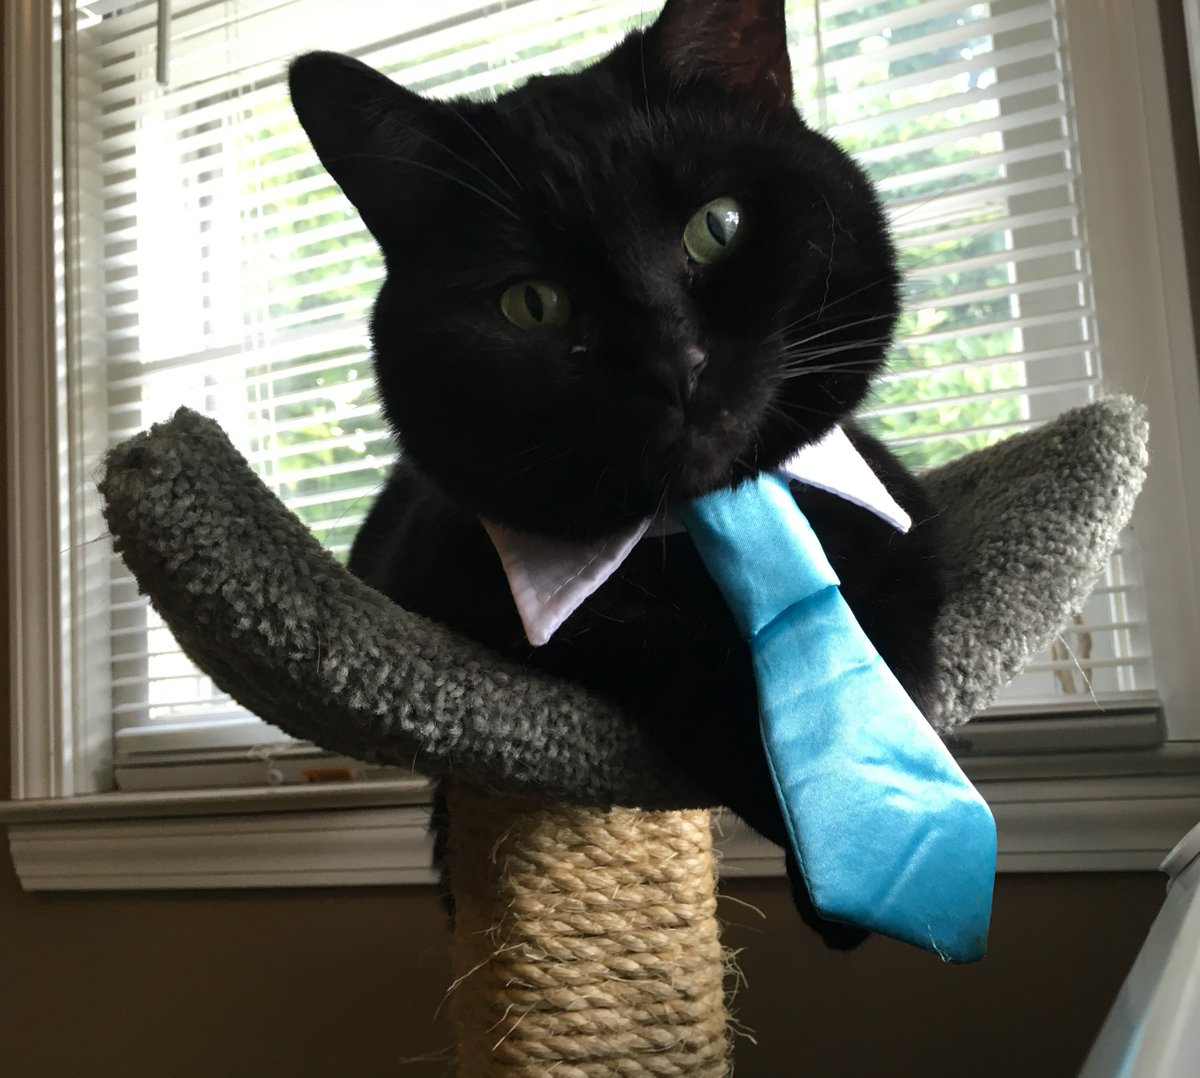 Raphael is dressed and looking purrfect in celebration of #NineLives opening in theaters this Friday 8/5. #ad https://t.co/3GtzcMaGTI